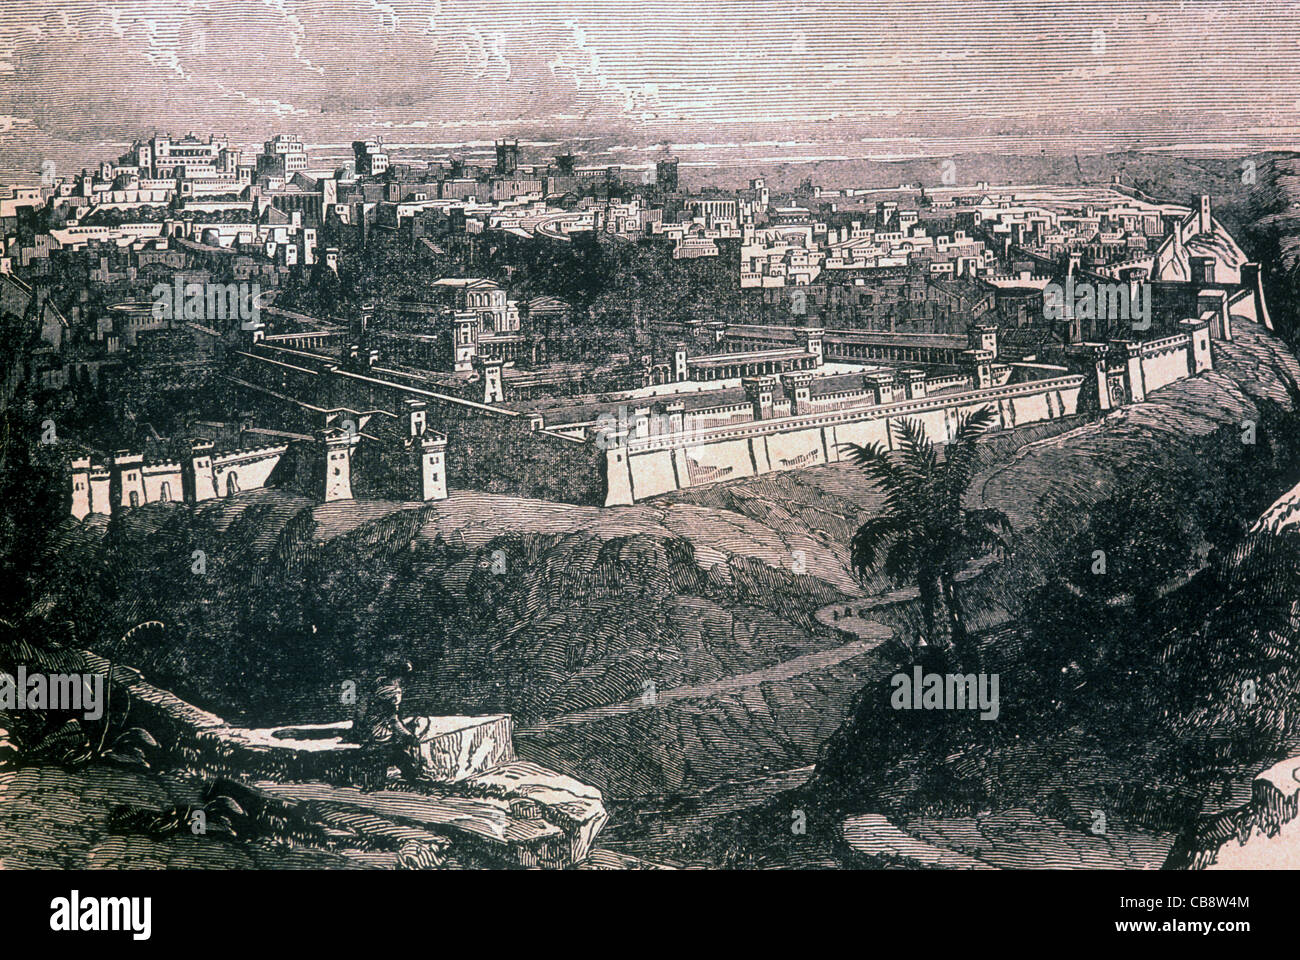 Lithograph featuring Jerusalem as it may have looked in the Day of Our Lord - Stock Image